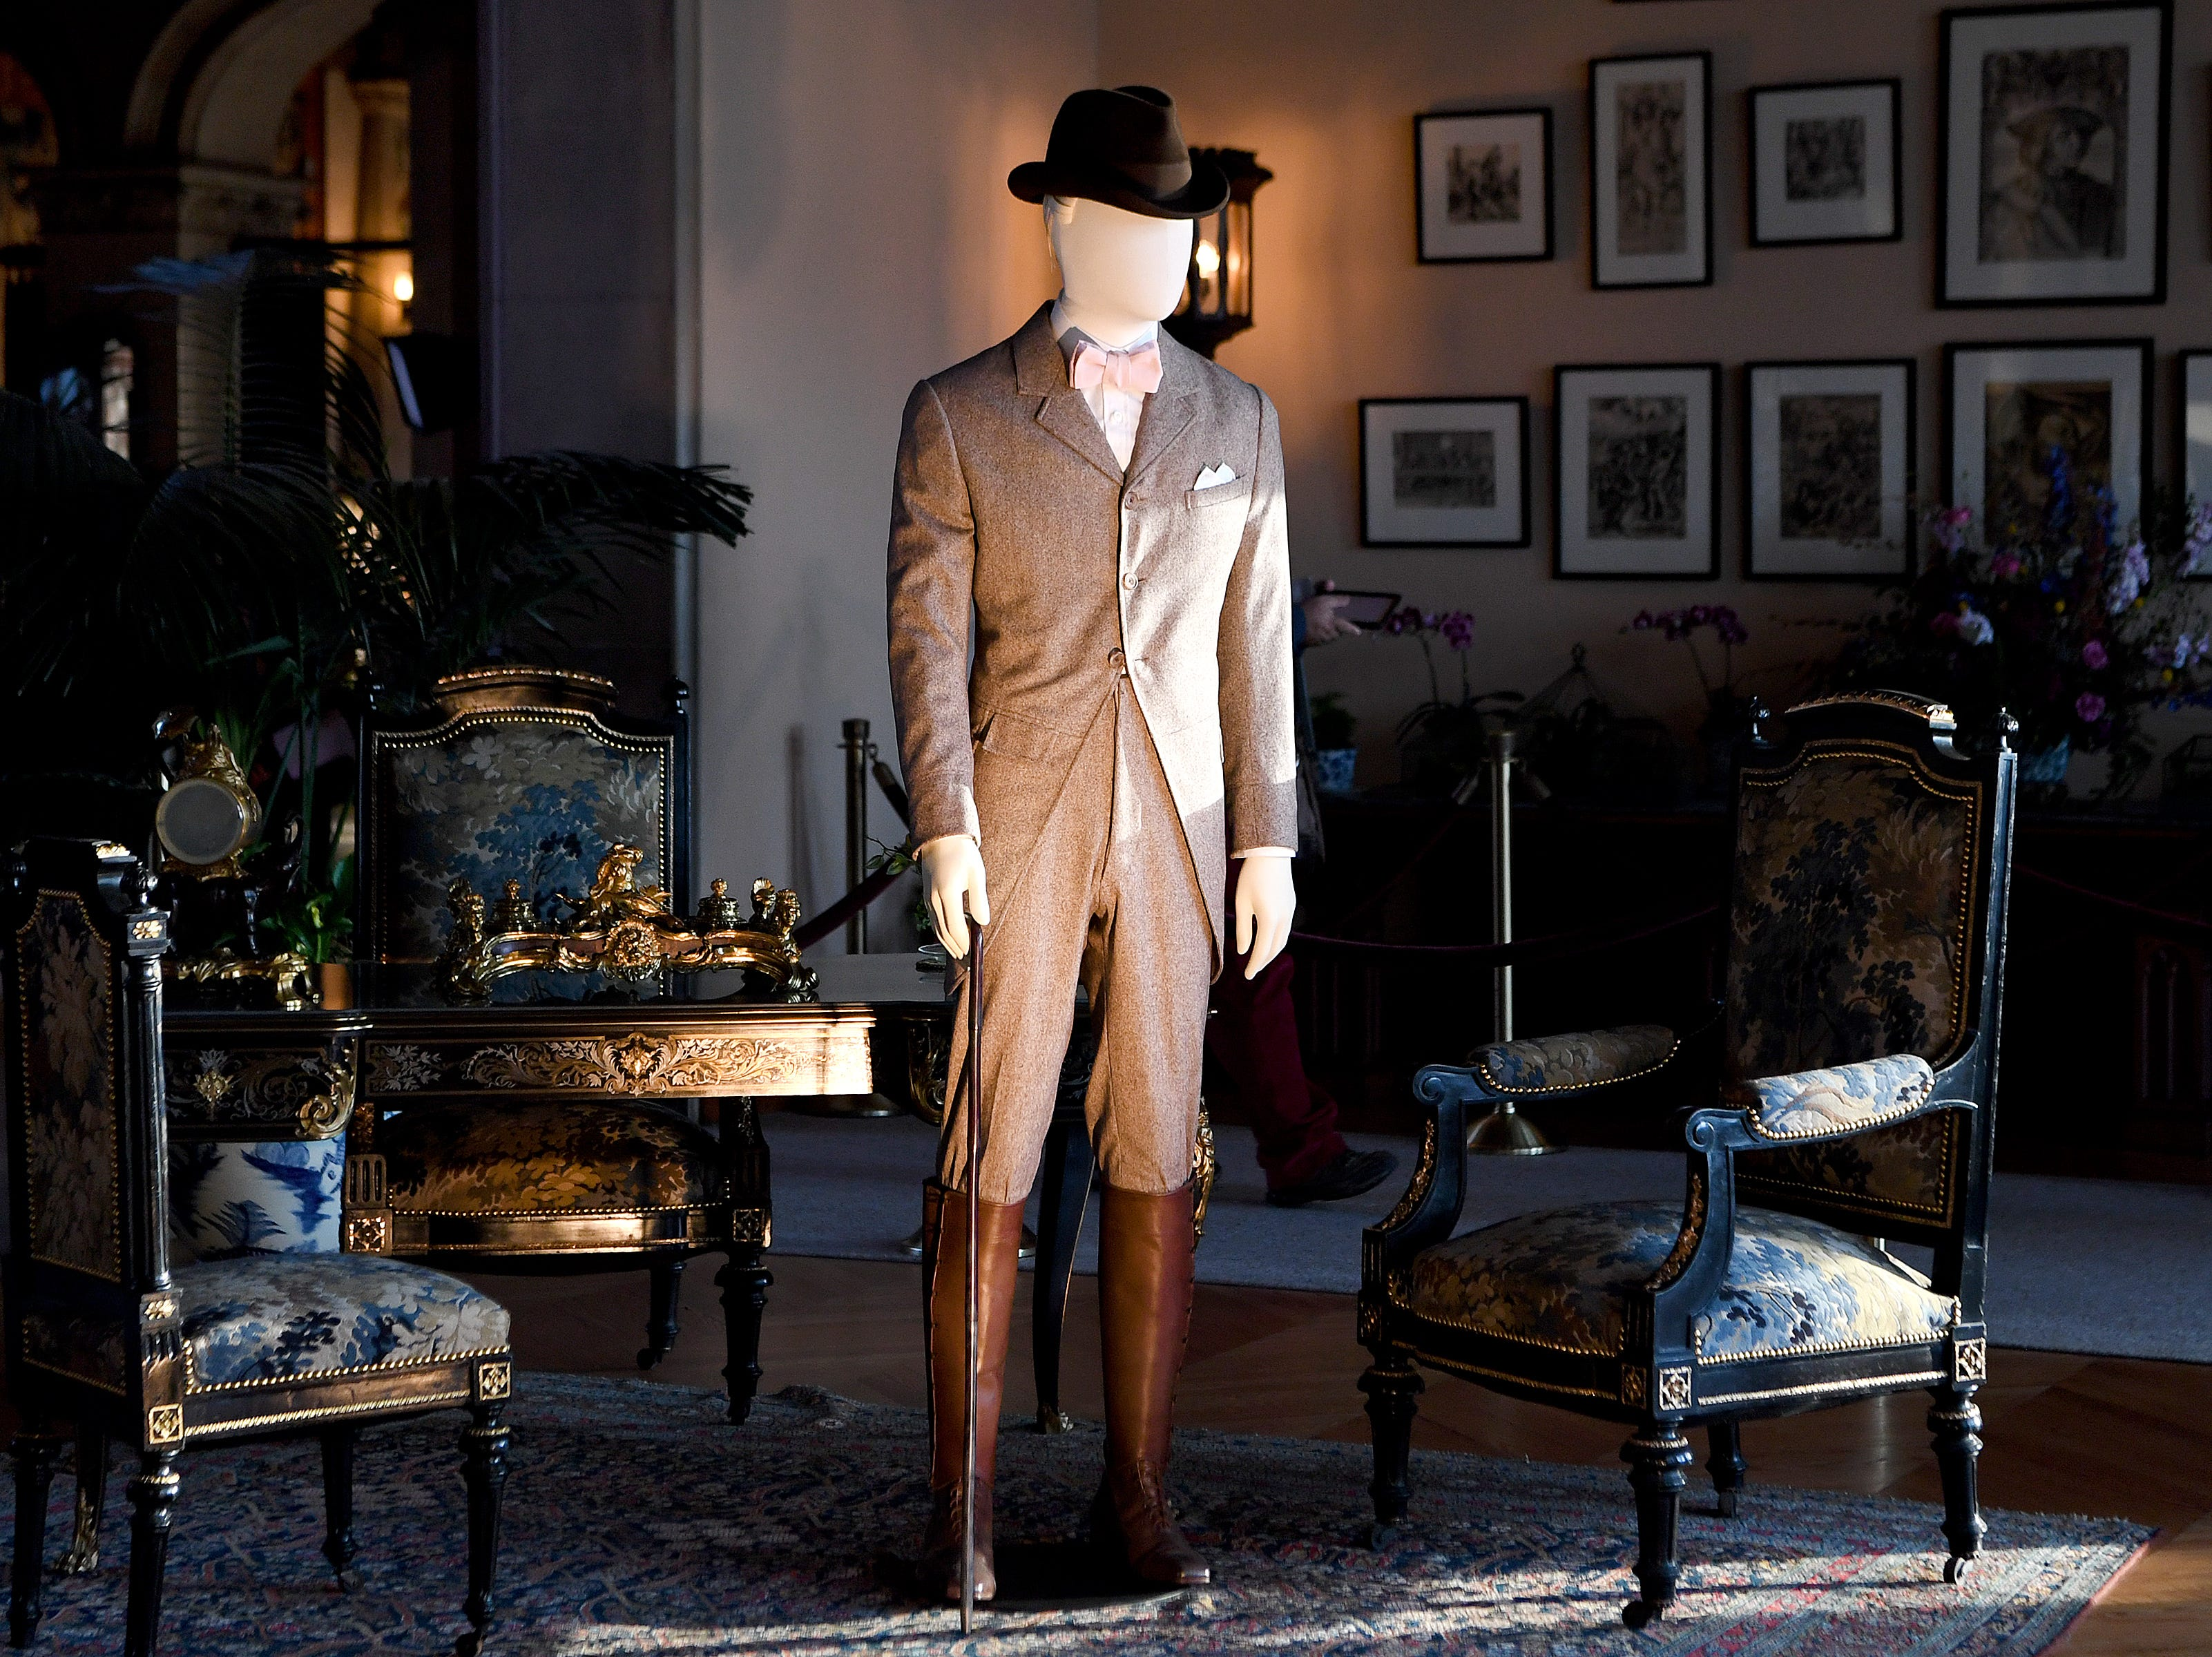 """An outfit representing what George Vanderbilt would have worn walking the grounds of the Biltmore is displayed in the salon of the Biltmore House for """"A Vanderbilt House Party, the Gilded Age,"""" on Feb. 7, 2019."""